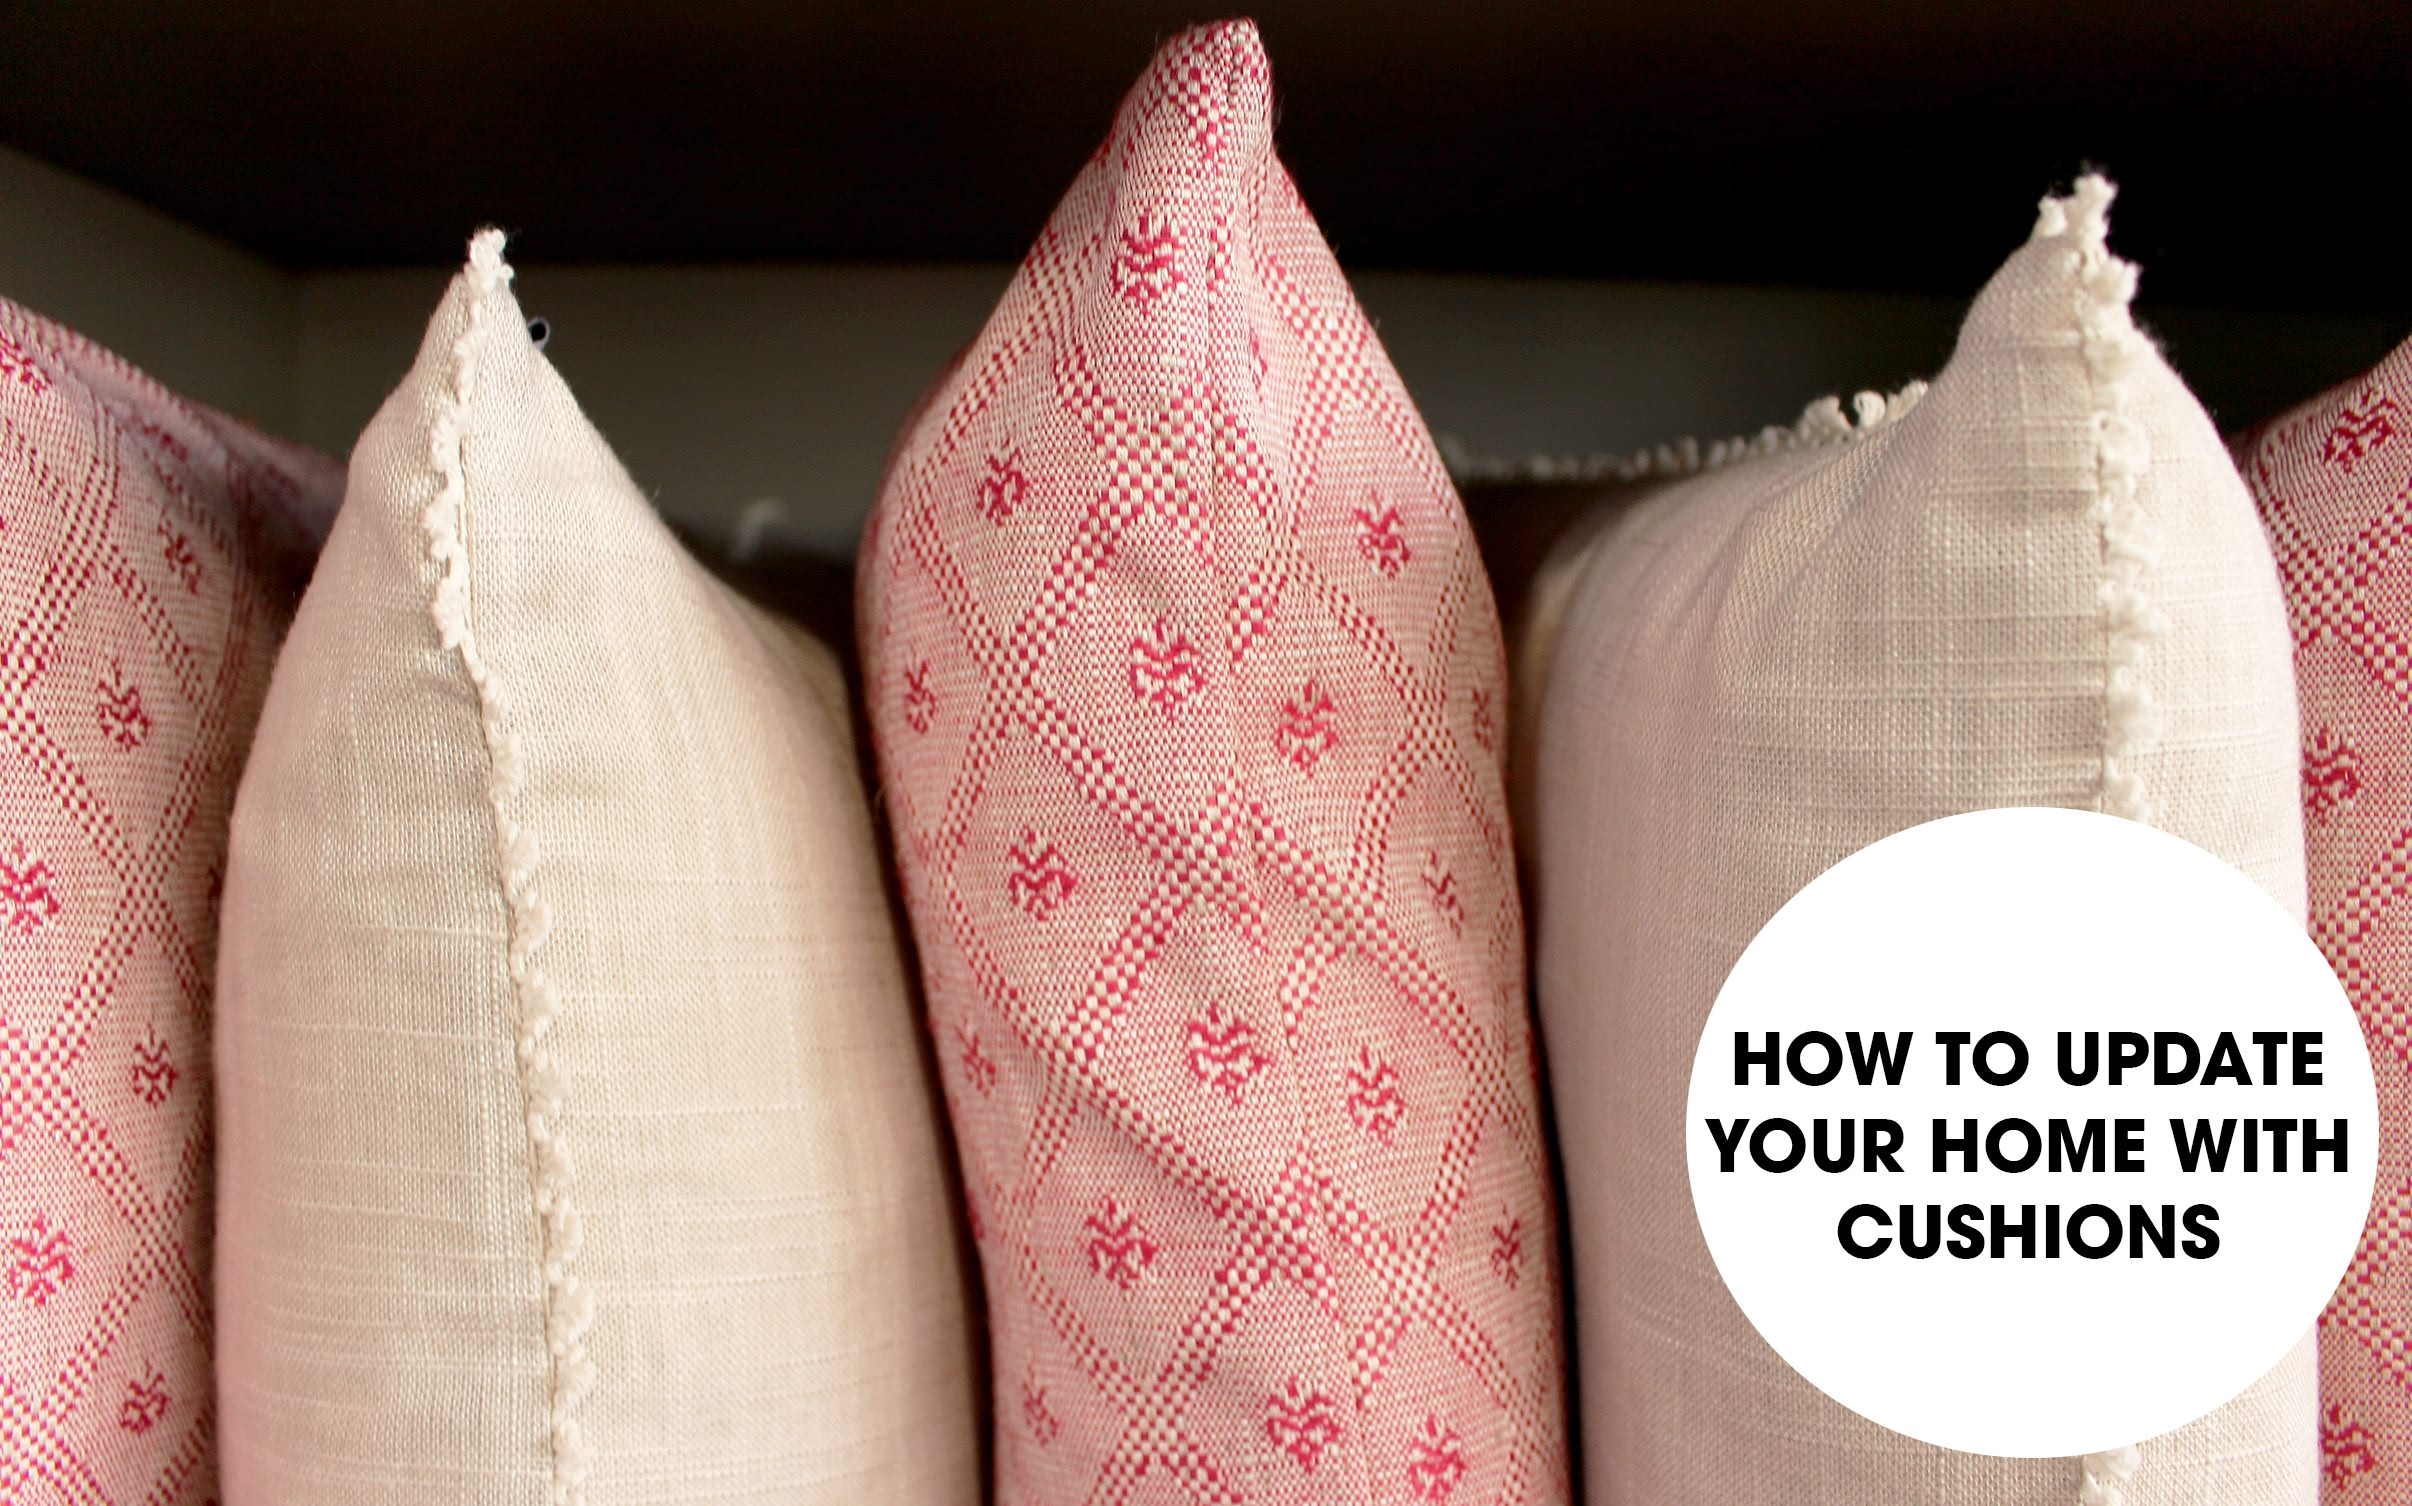 update your home with cushions